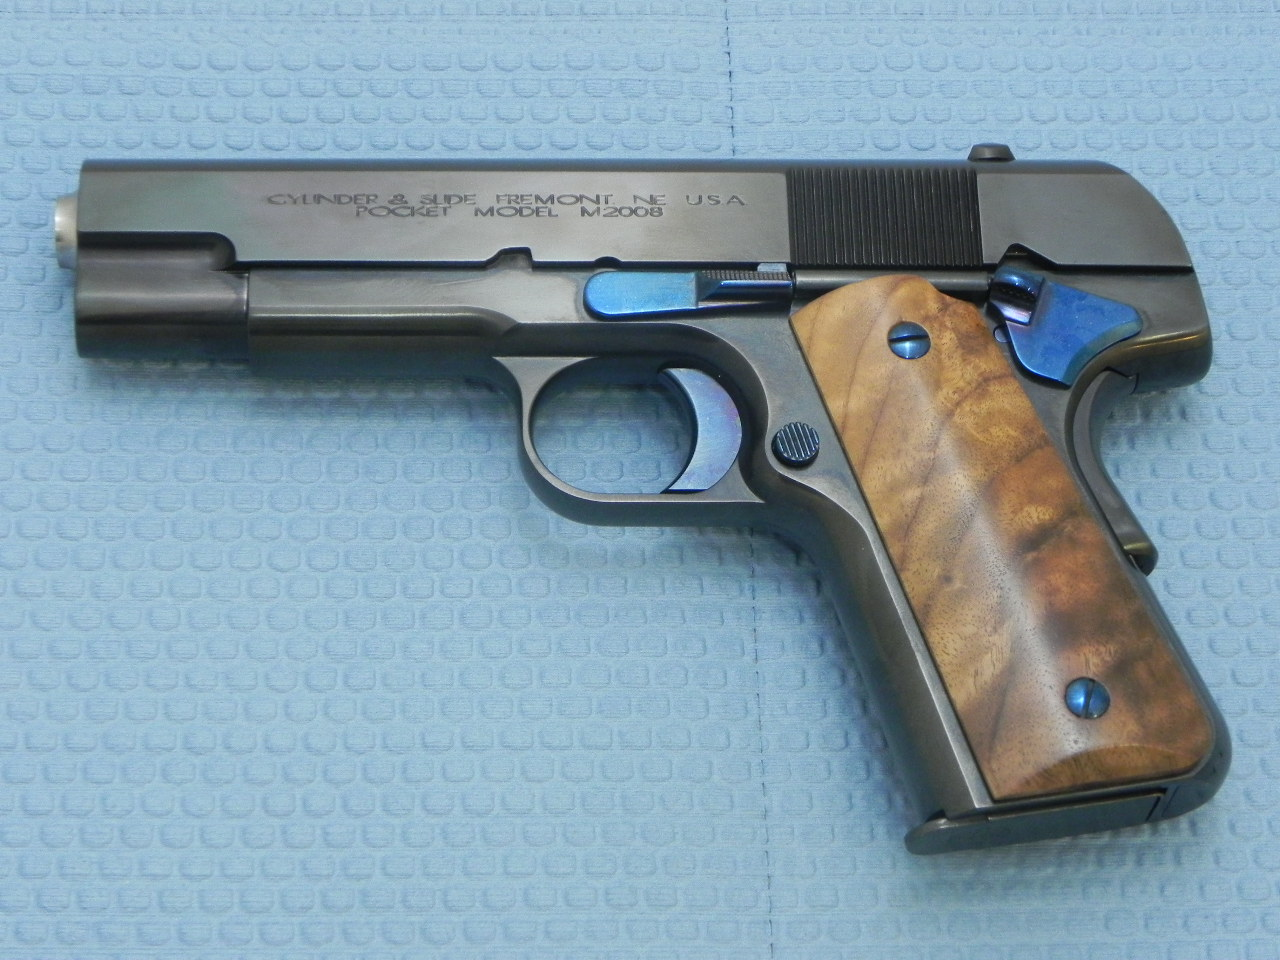 PM78 - Historical Pocket Model 45 ACP